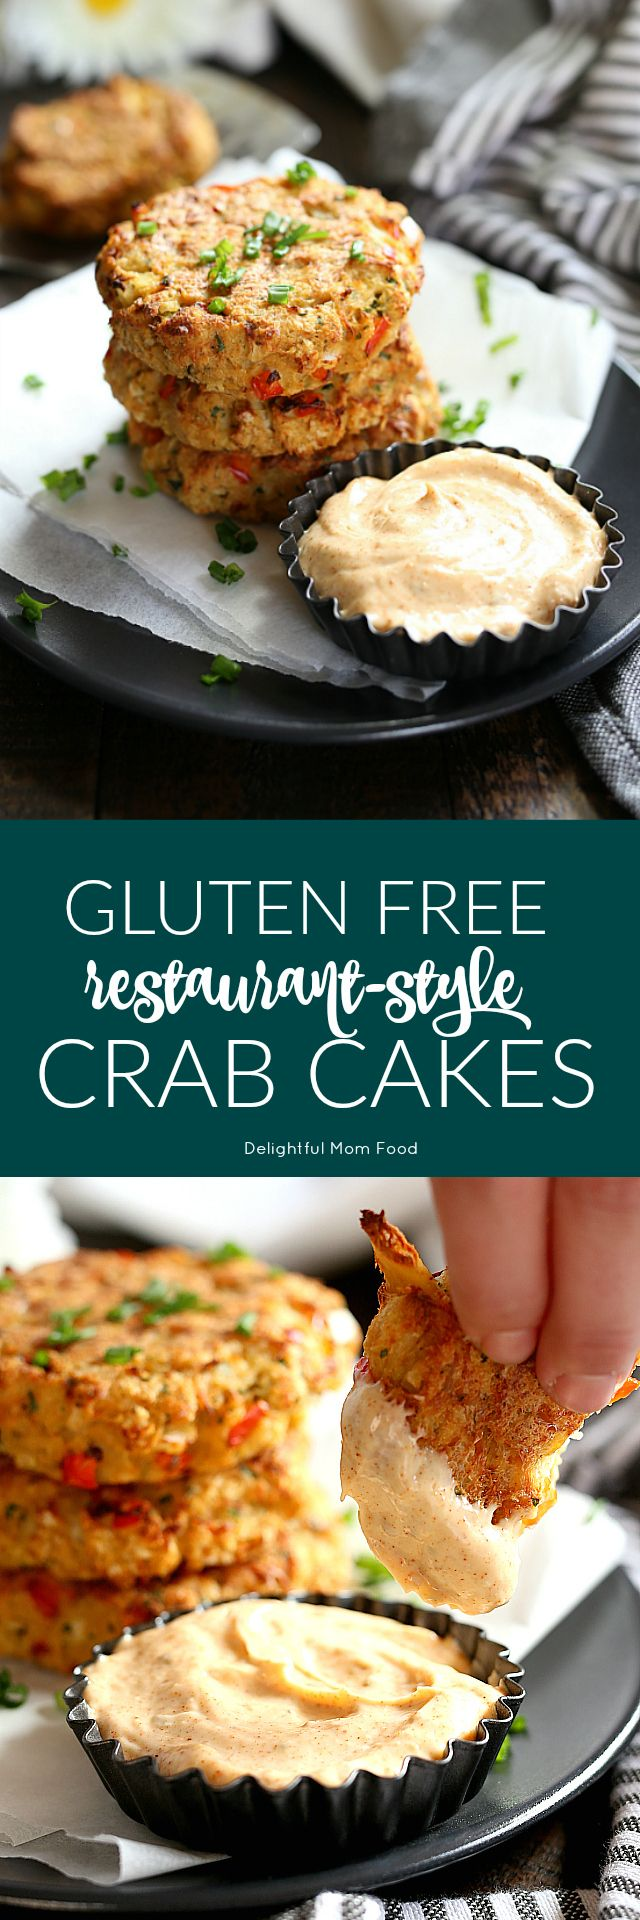 Restaurant Style Gluten Free Crab Cakes Recipe With Spicy Greek Yogurt Sauce